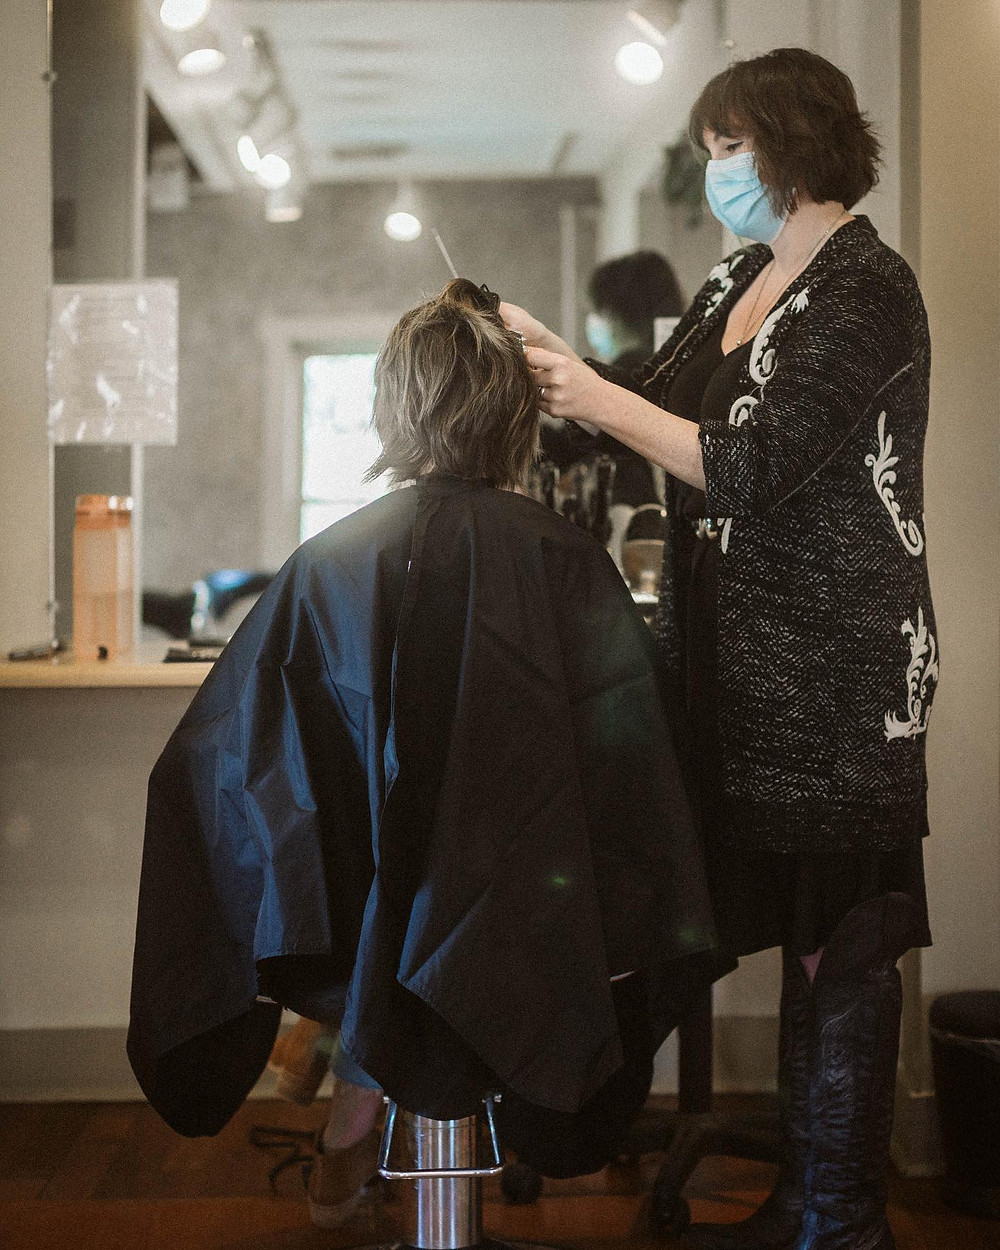 Salon manager Amanda Flick at her station with a guest. Photo by Kairos Creative Co./Sam Lucas